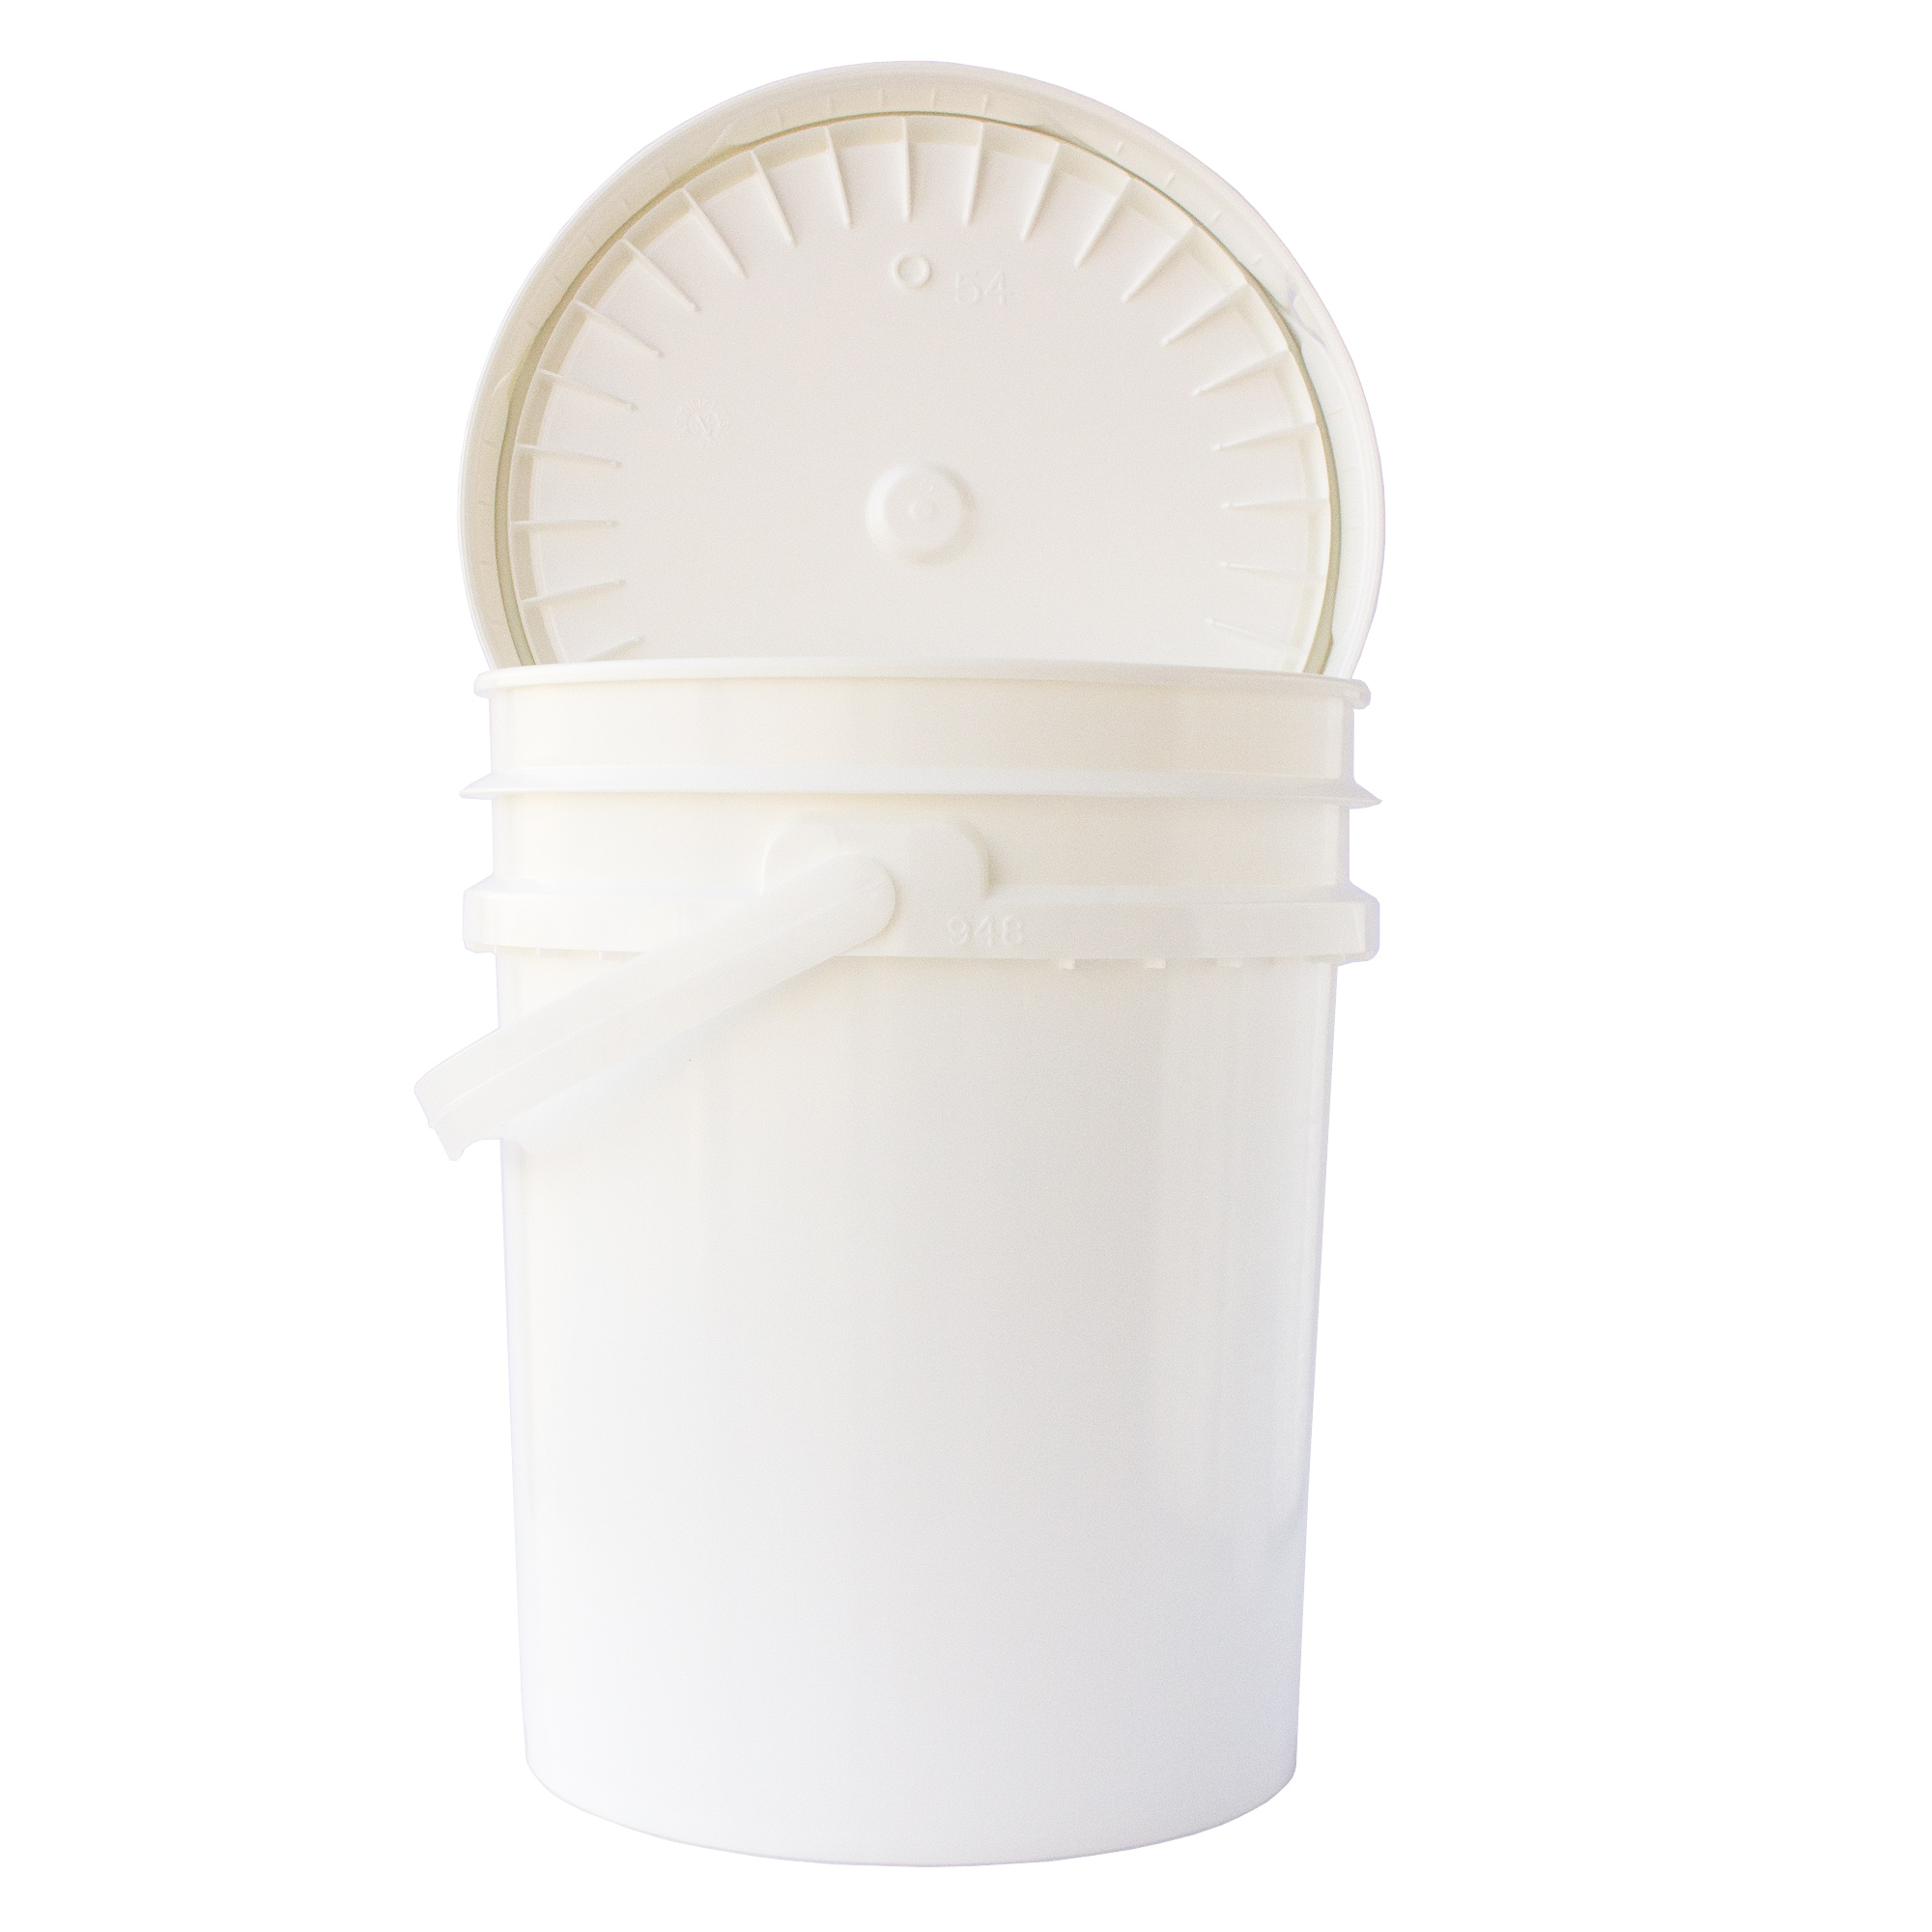 5 Gallon White Plastic Bucket -Food Grade Pail & Lid-Storage Container